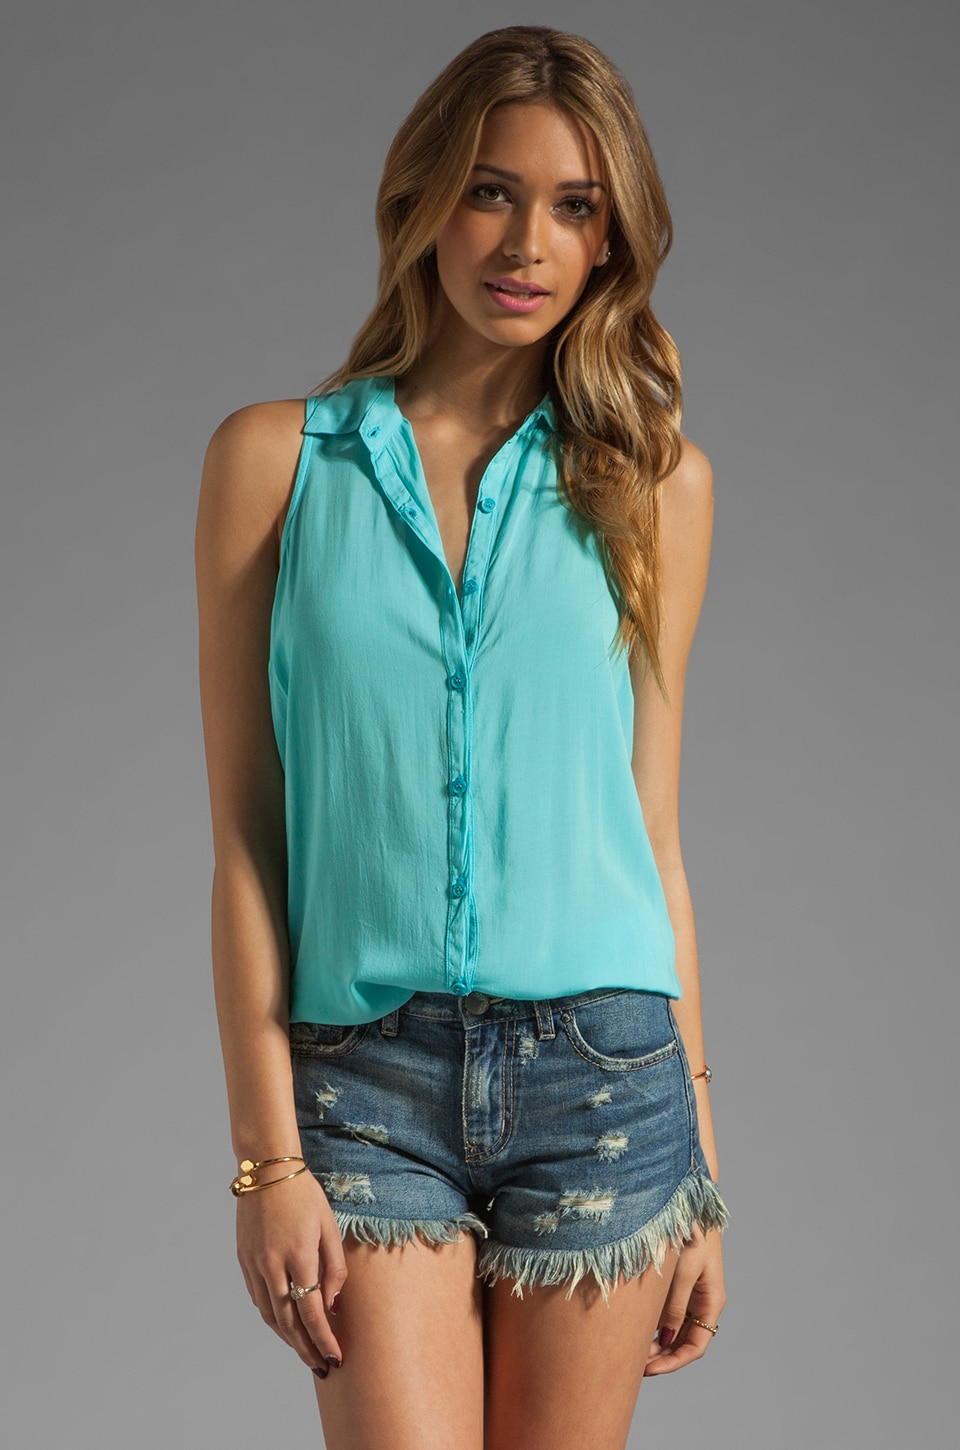 Splendid Shirting Button Up Tank in Aquatic